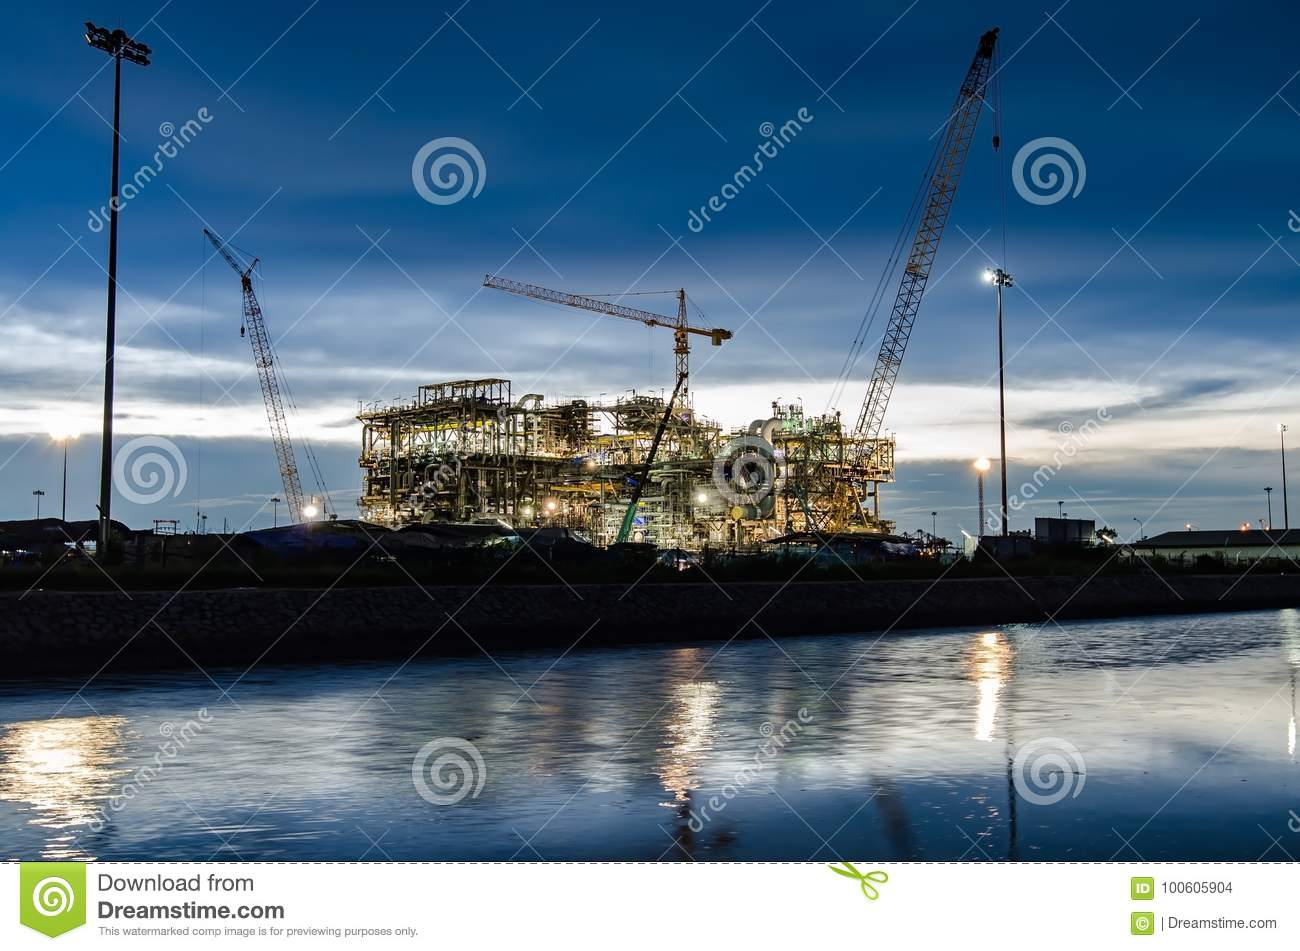 Construction Site Stock Photo Image Of Building Blue 100605904